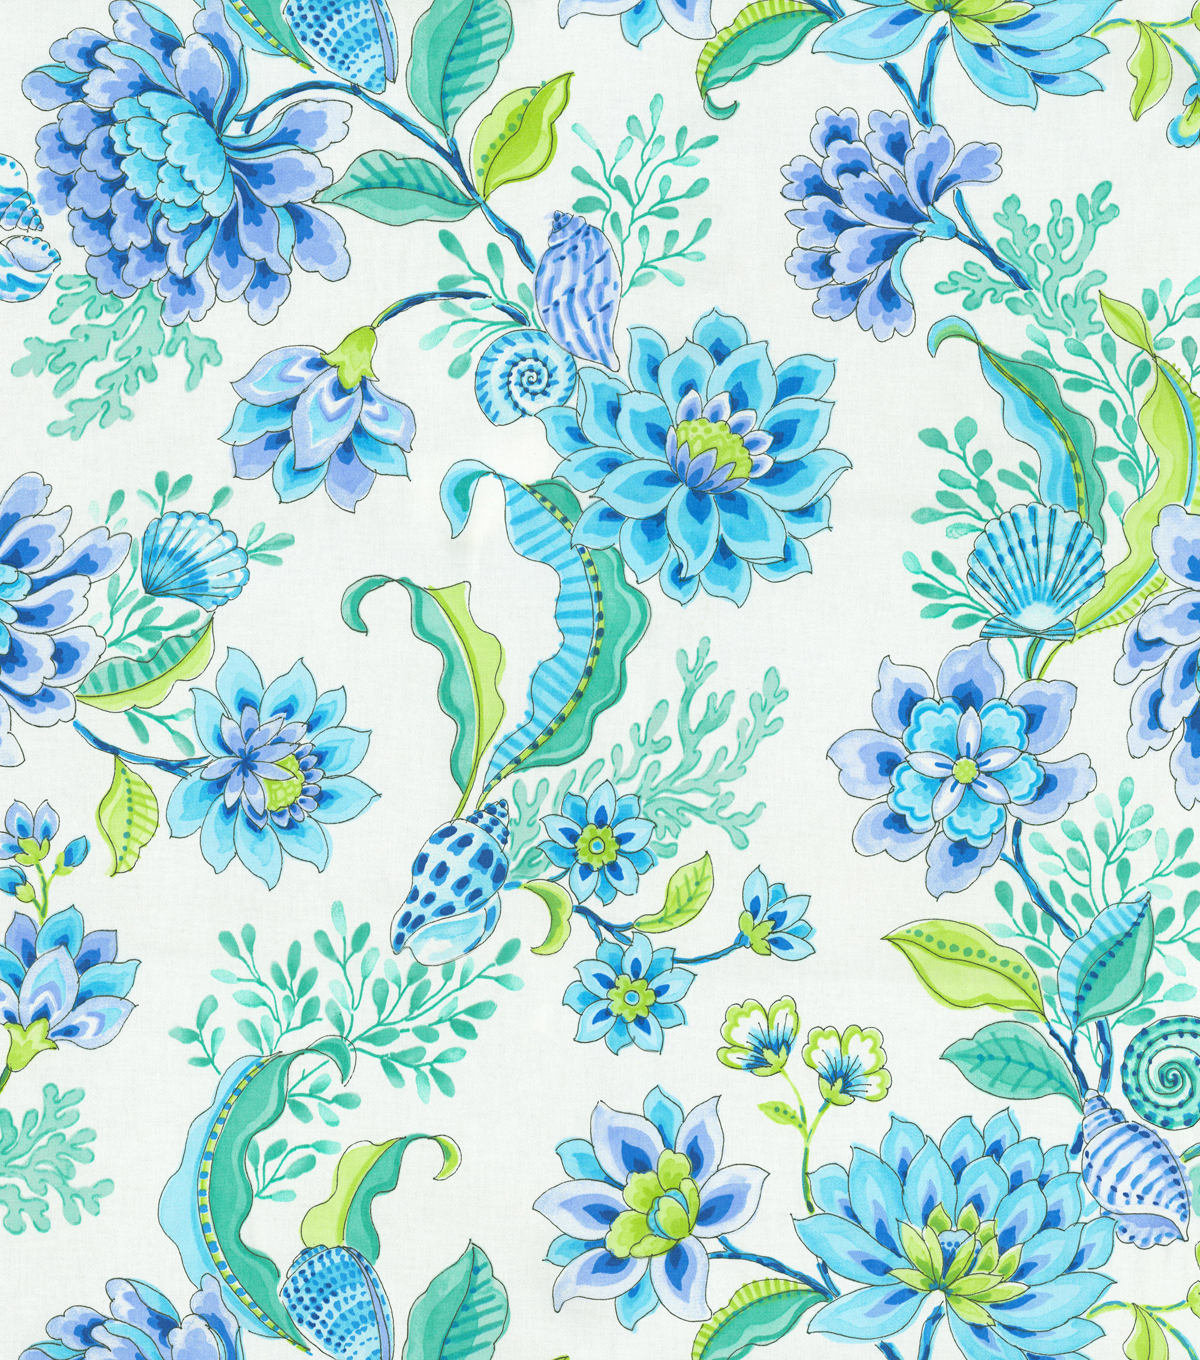 Home Decor 8\u0022x8\u0022 Fabric Swatch-Laurette Design Diver\u0027s Paradise Bliss